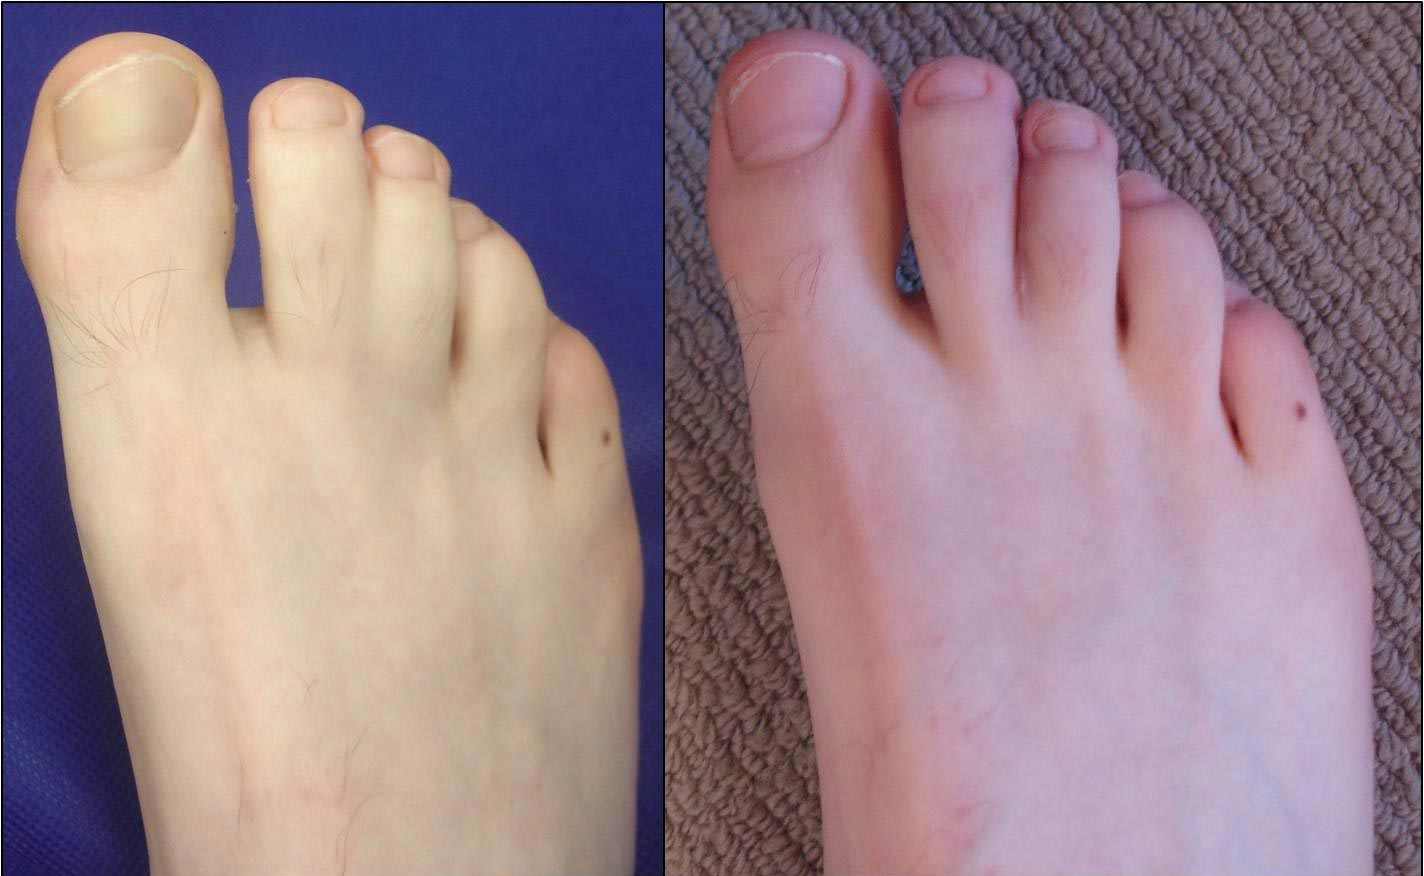 Right foot six-months after de-syndactly procedure to separate the 2nd and 3rd toes